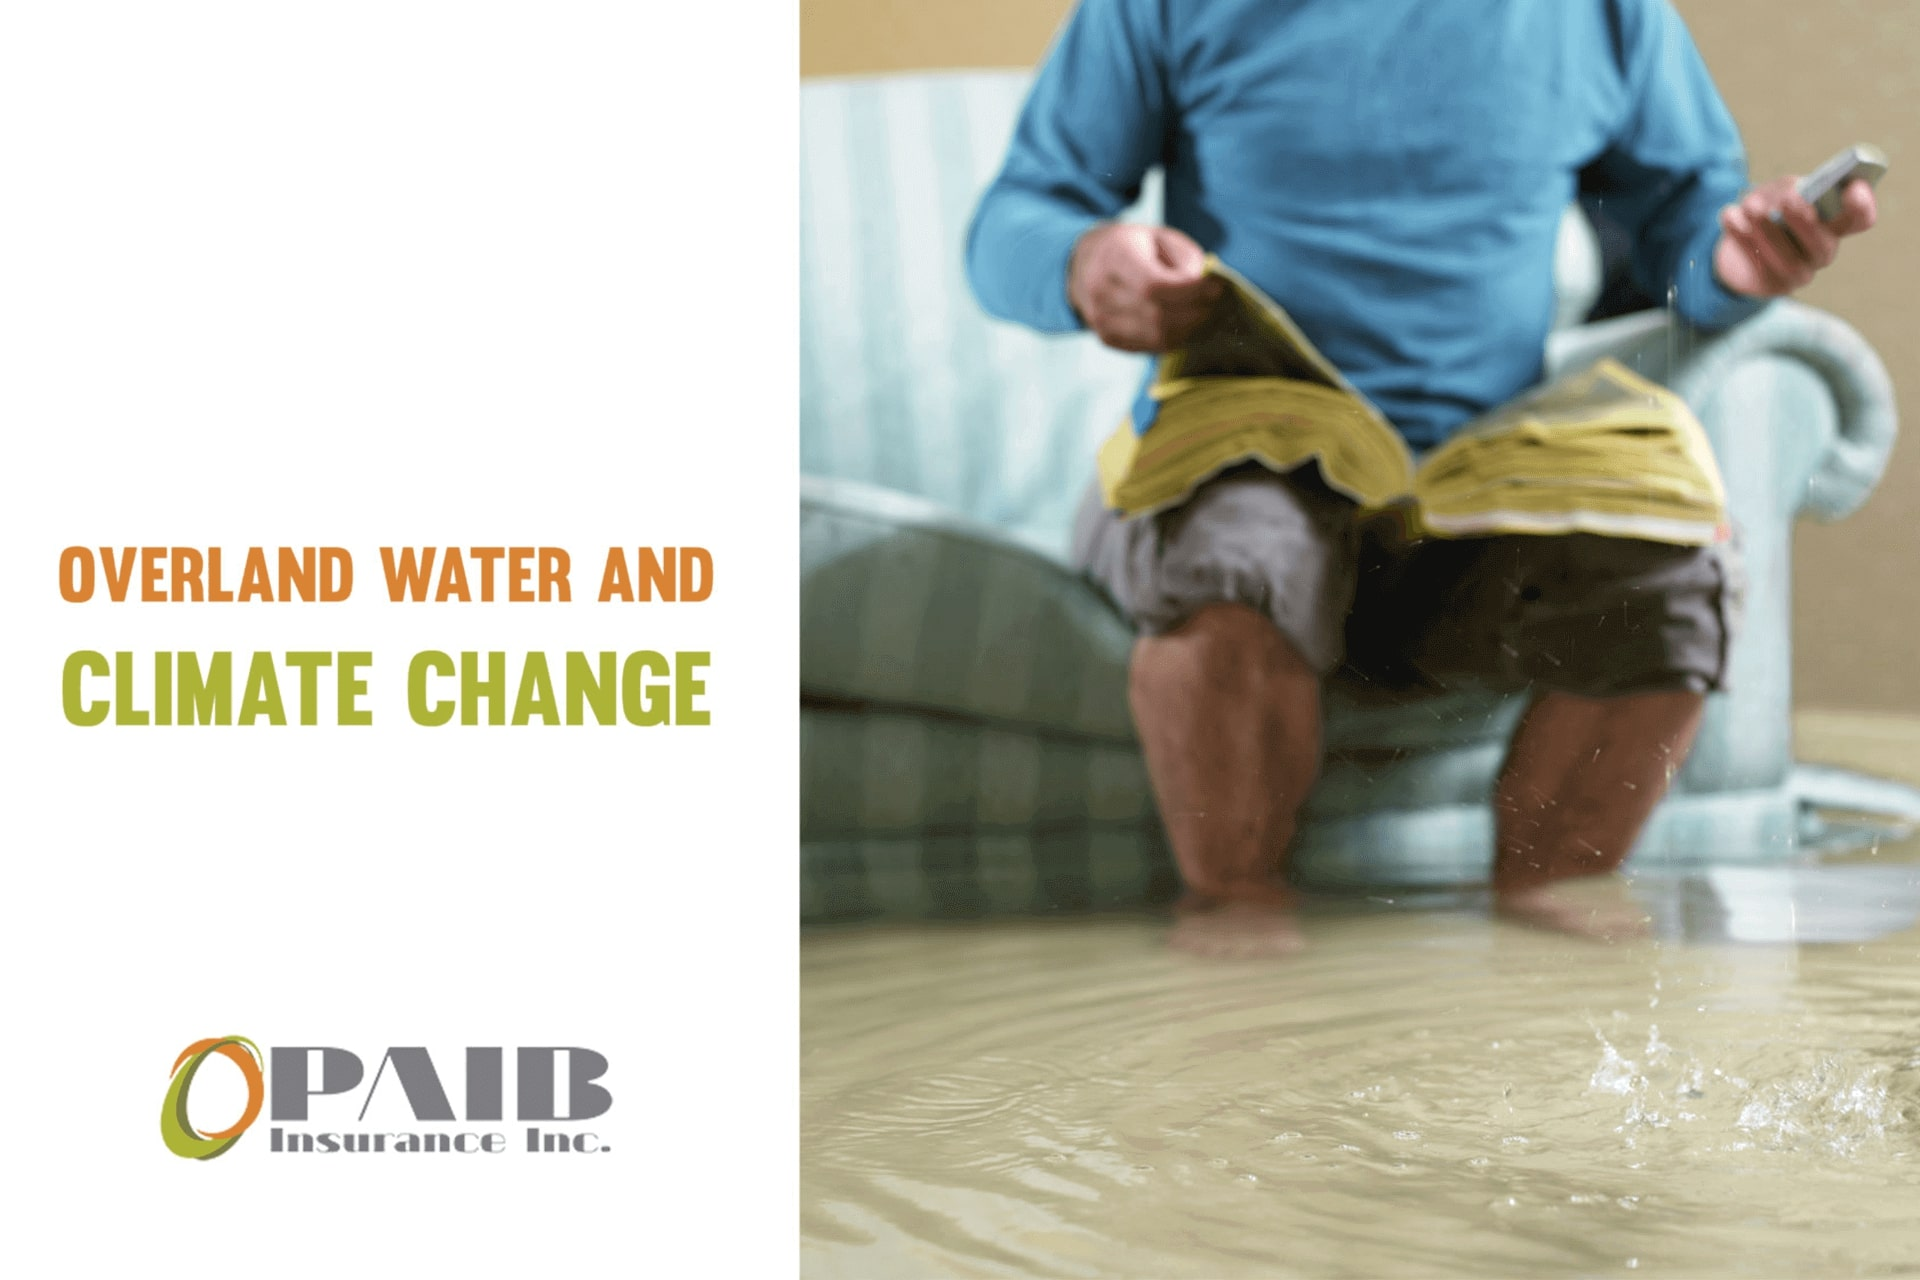 Overland Water Endorsement and Climate Change - PAIB Insurance